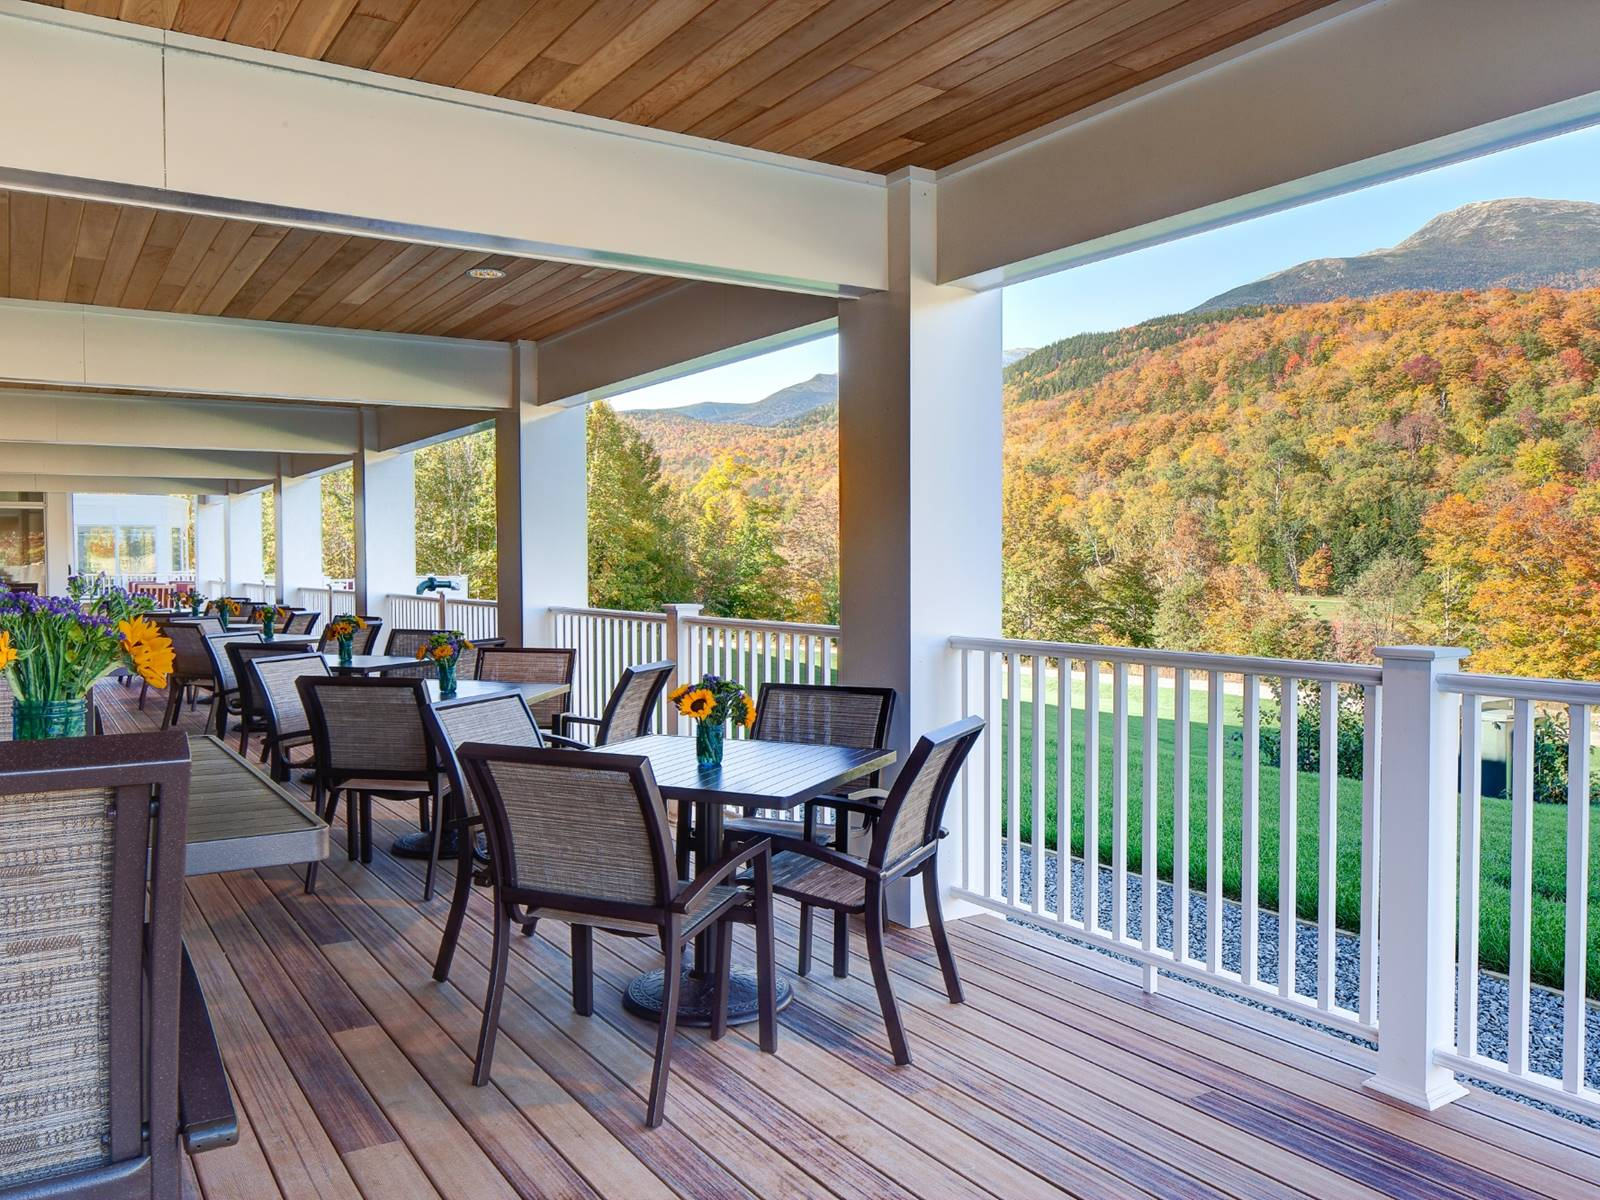 Deck Dining at The Notch Grille